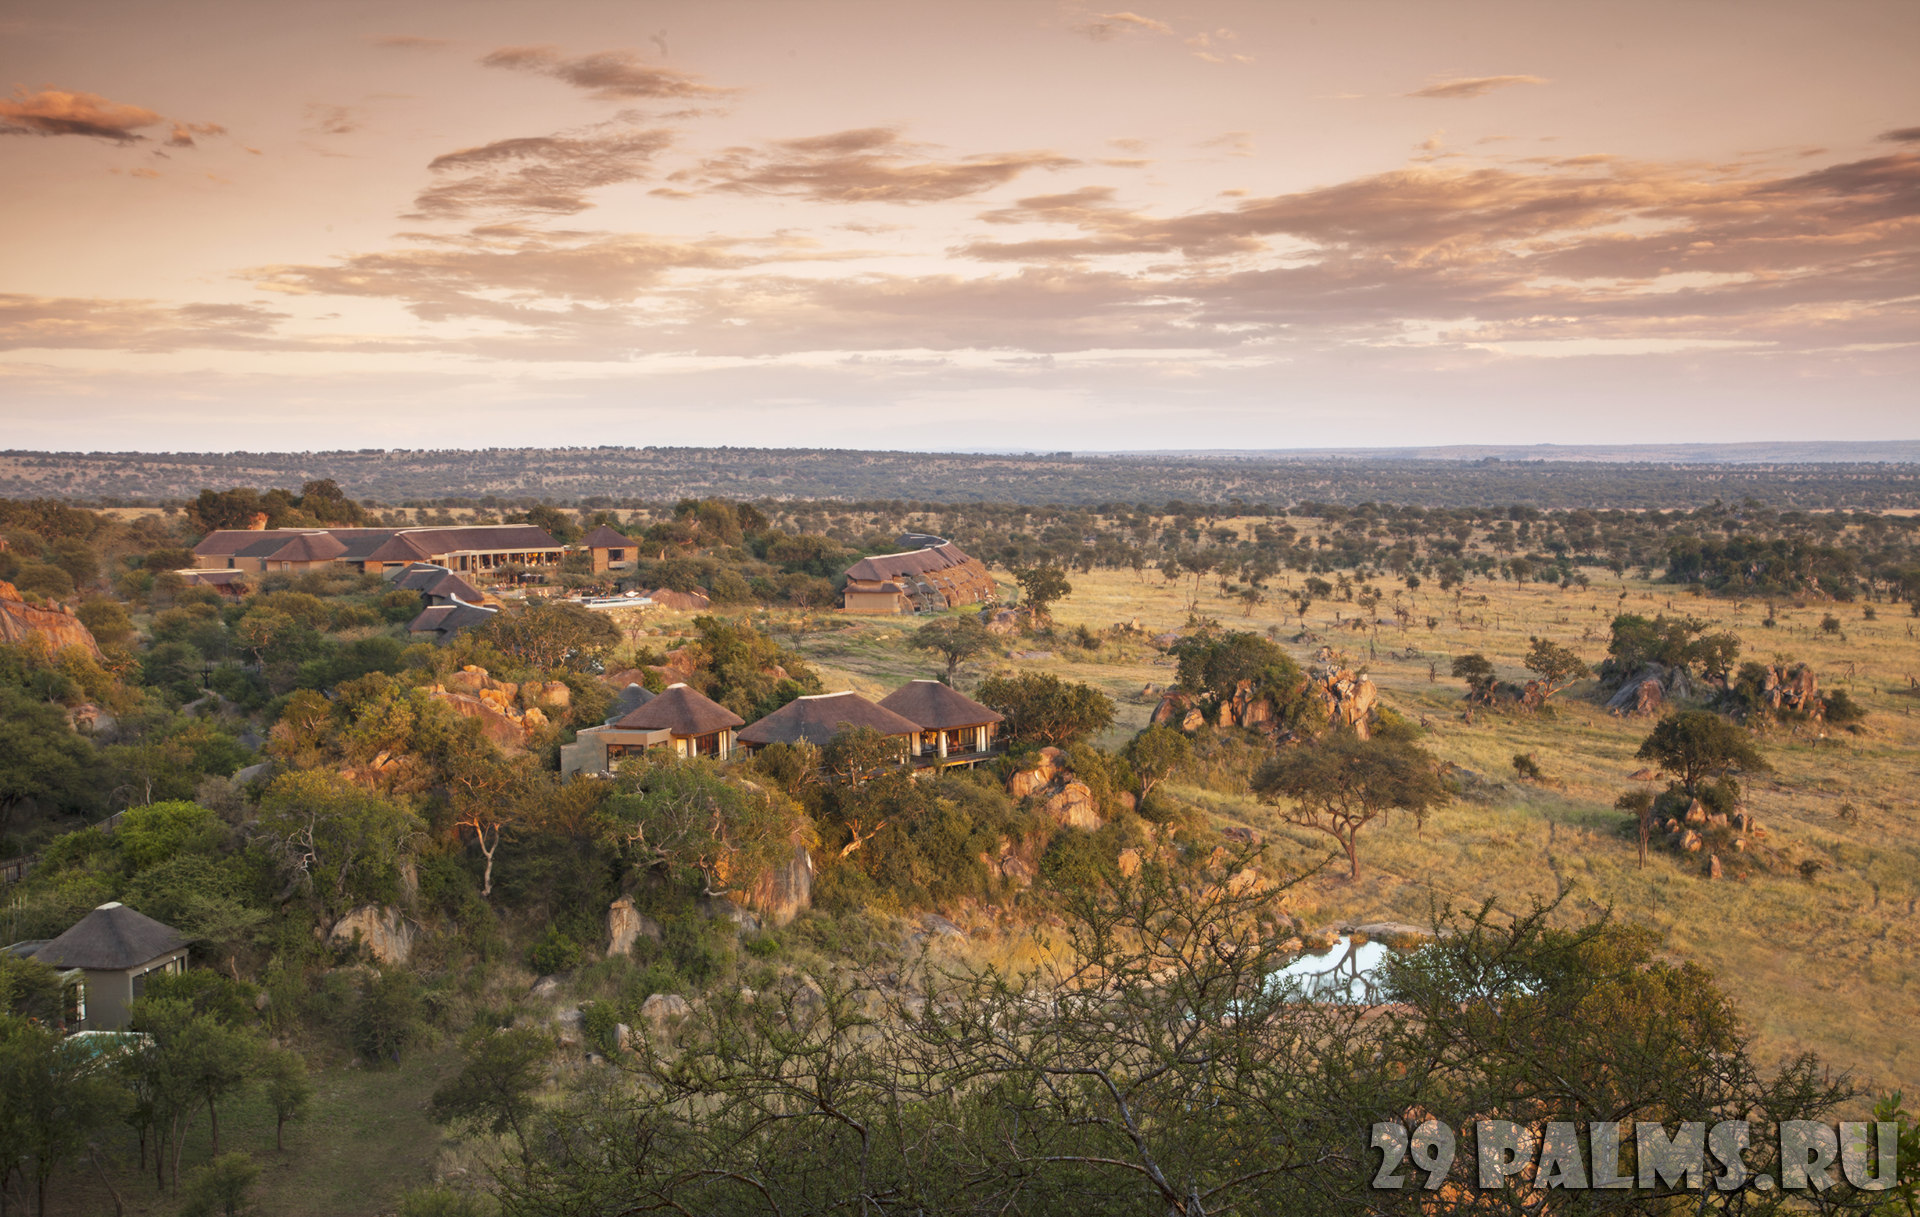 Клуб путешествий Павла Аксенова. Танзания. Four Seasons Safari Lodge Serengeti. Overview of the resort